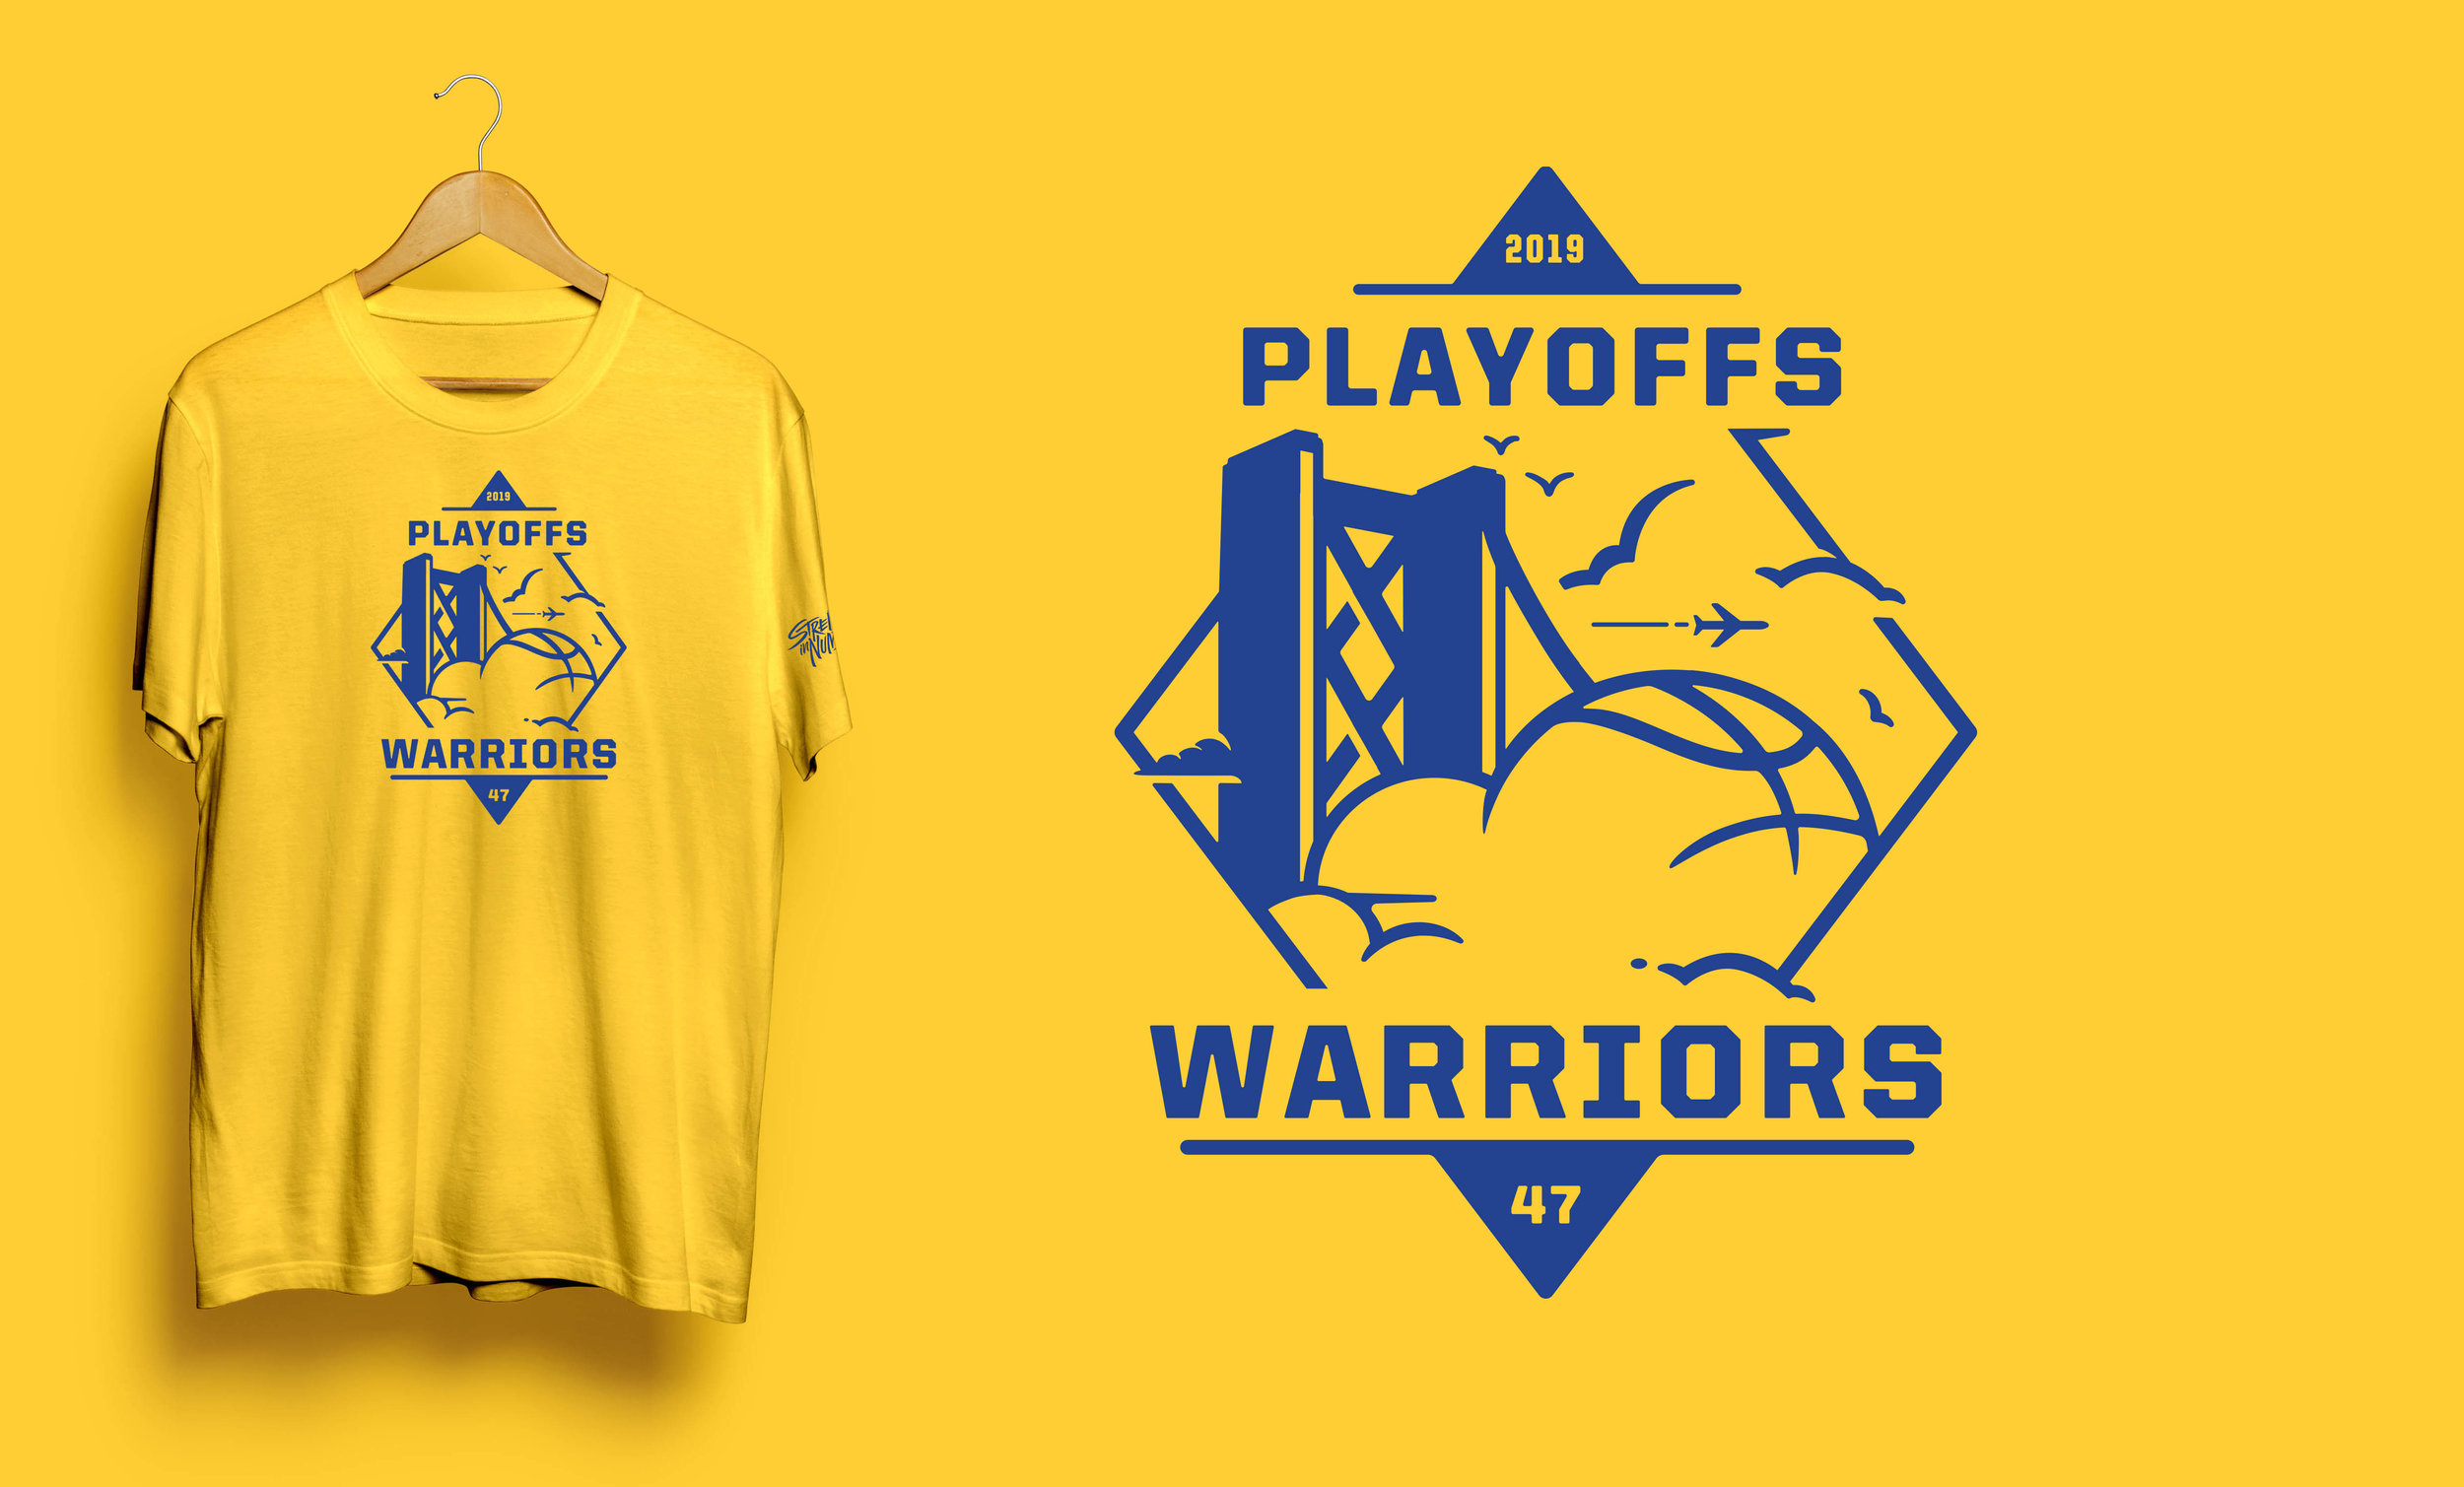 BG_Warriors_shirts1.jpg